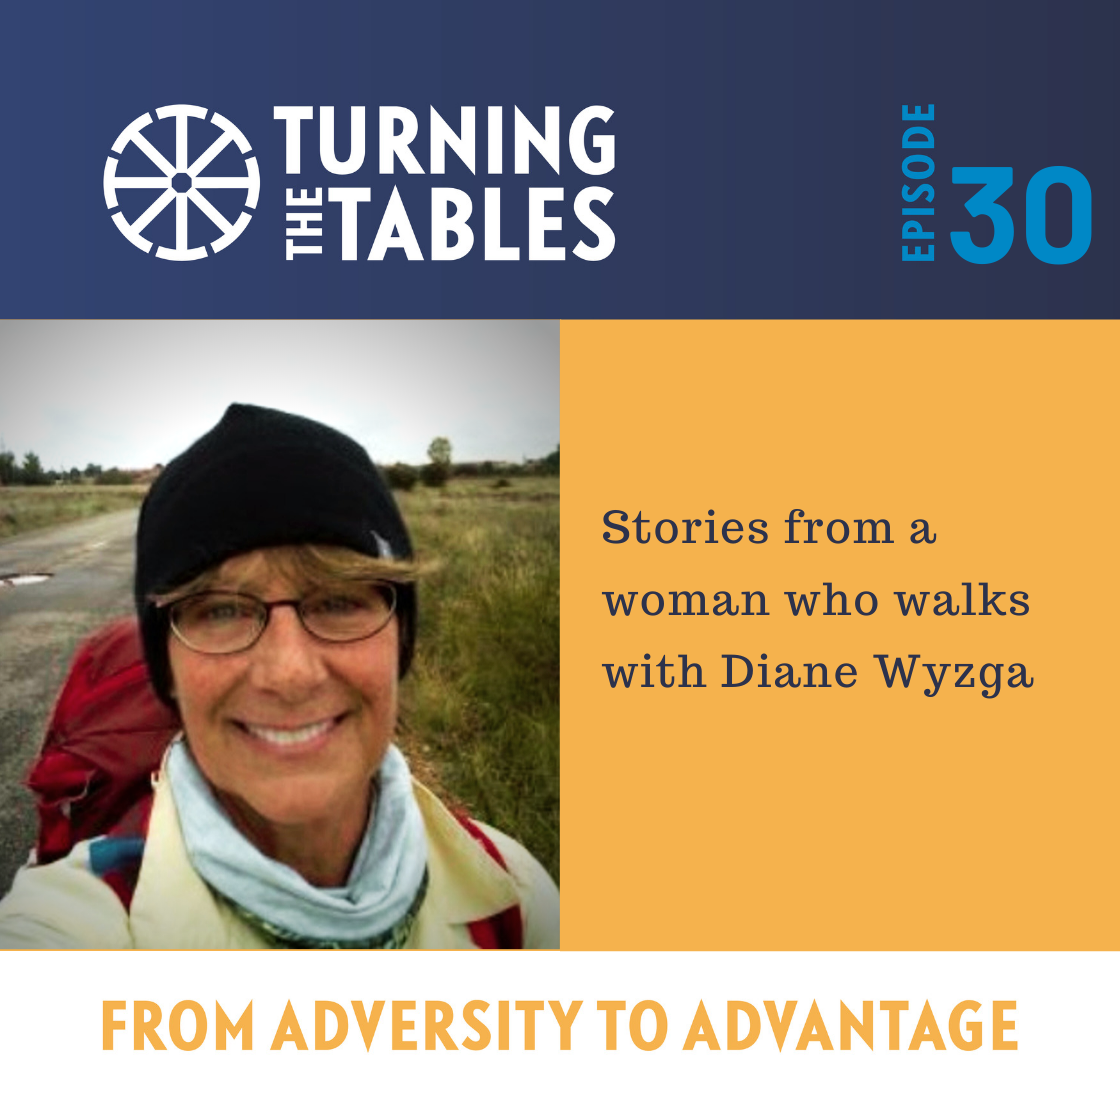 EP 30: Stories from a woman who walks, with Diane Wyzga